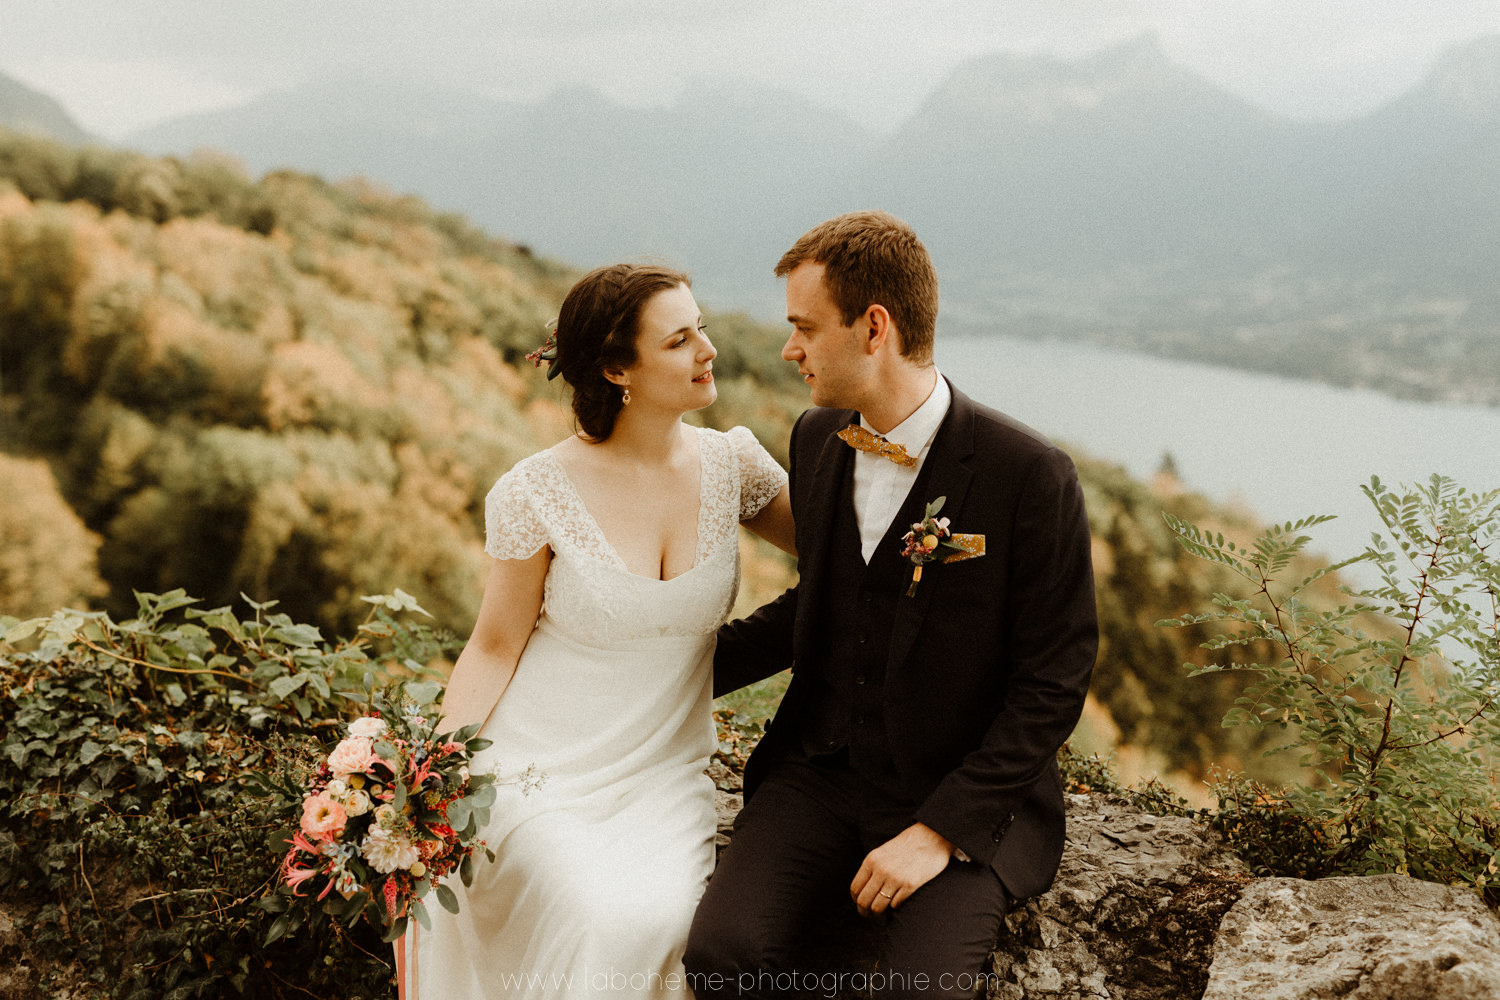 mariage chic a talloires - mariage lac annecy - photographe mariage